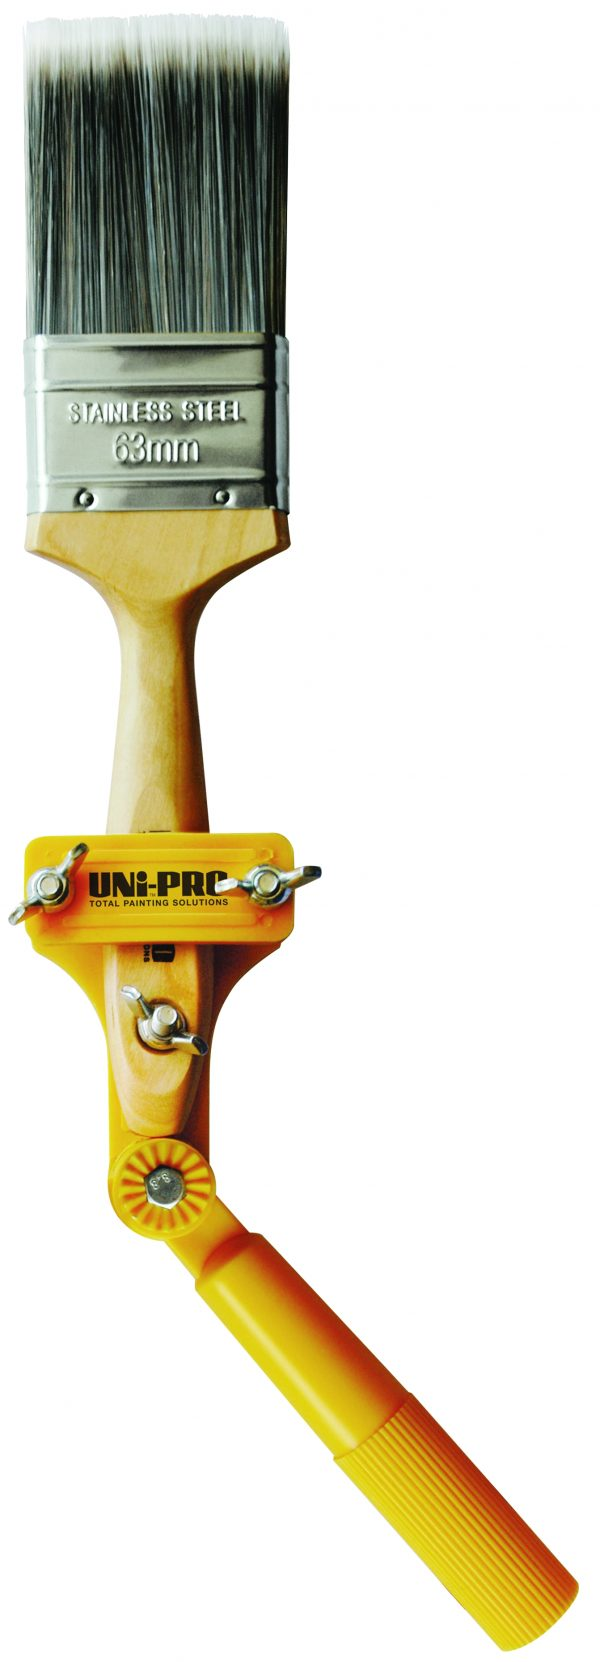 UNi-PRO Extension Pole Brush & Tool Clamp 1